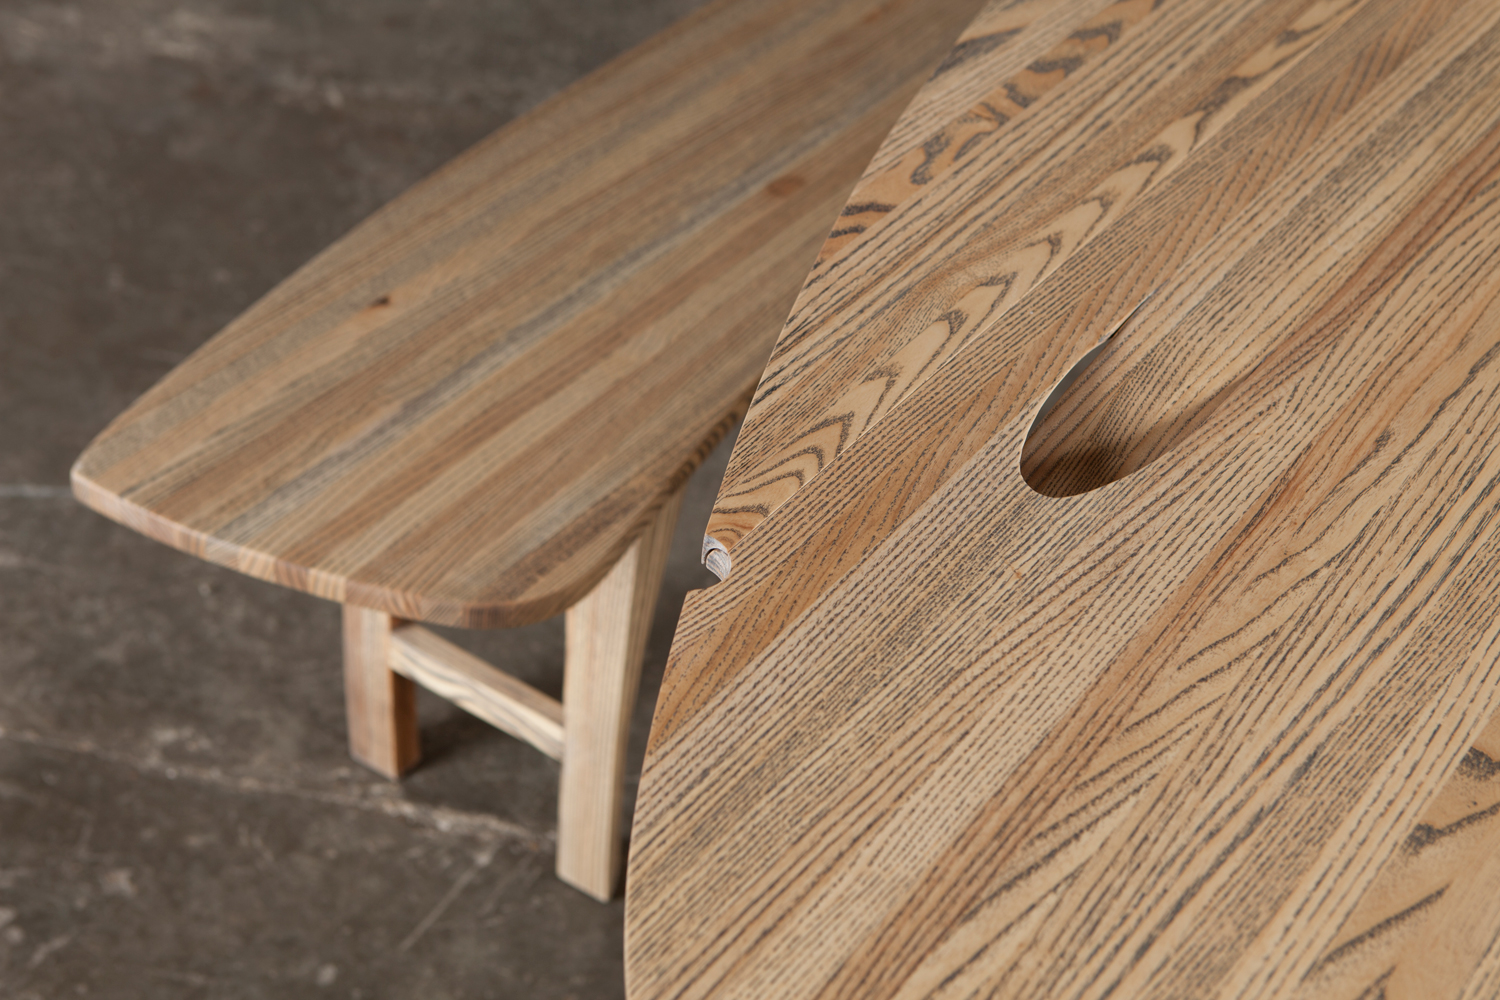 33_Oval-drop-leaf-table-in-solid-ash_5.jpg